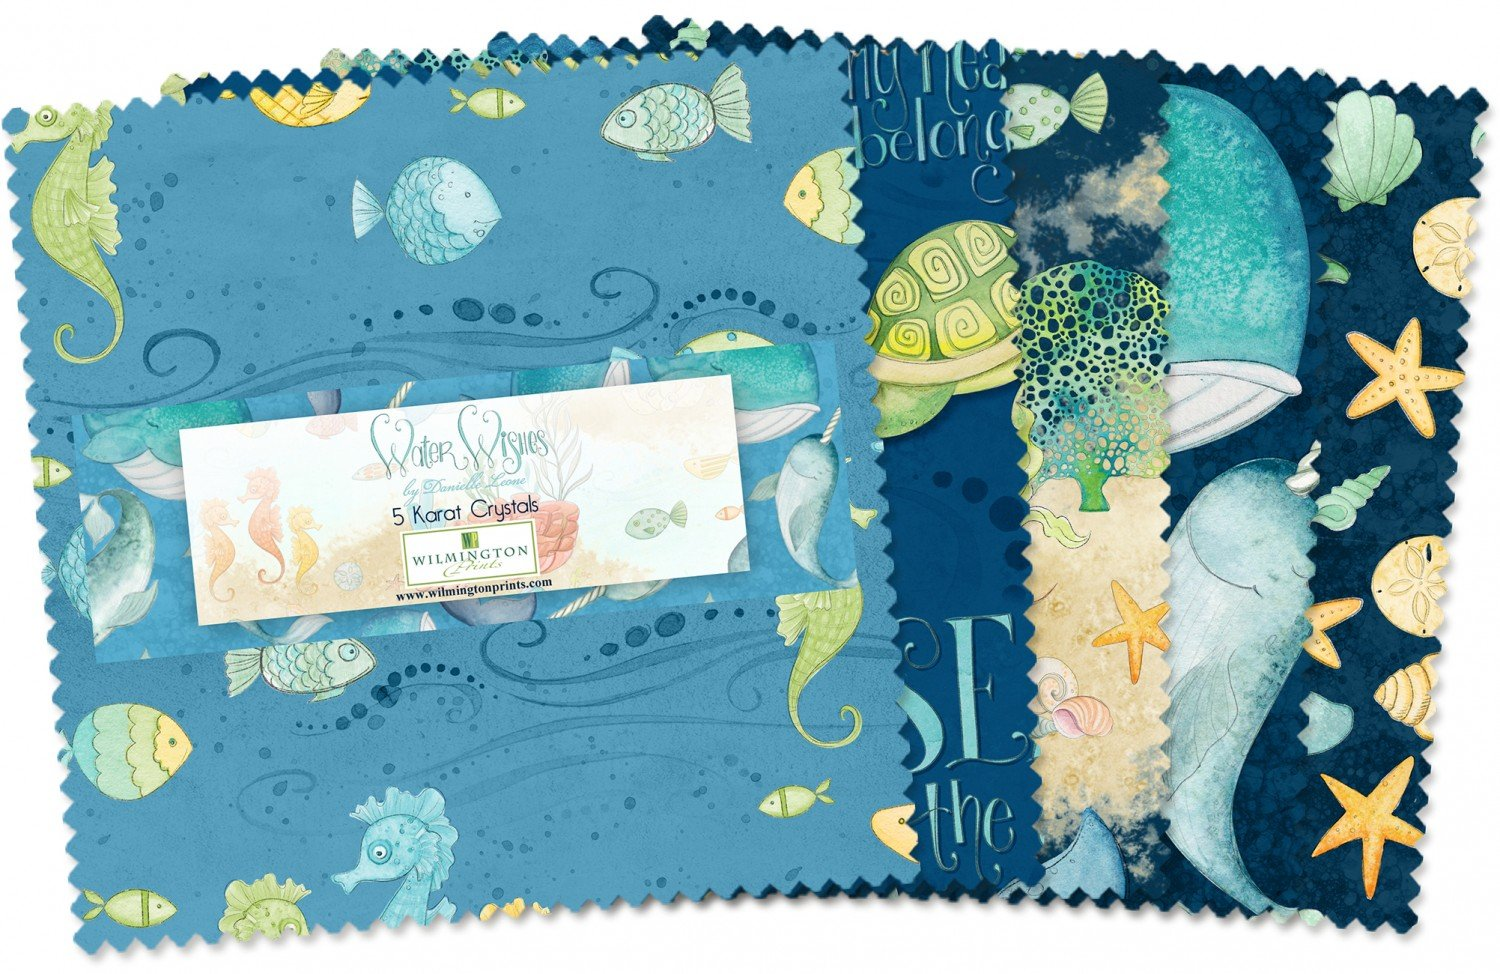 Water Wishes Charm Pack by Danielle Leone for Wilmington Prints